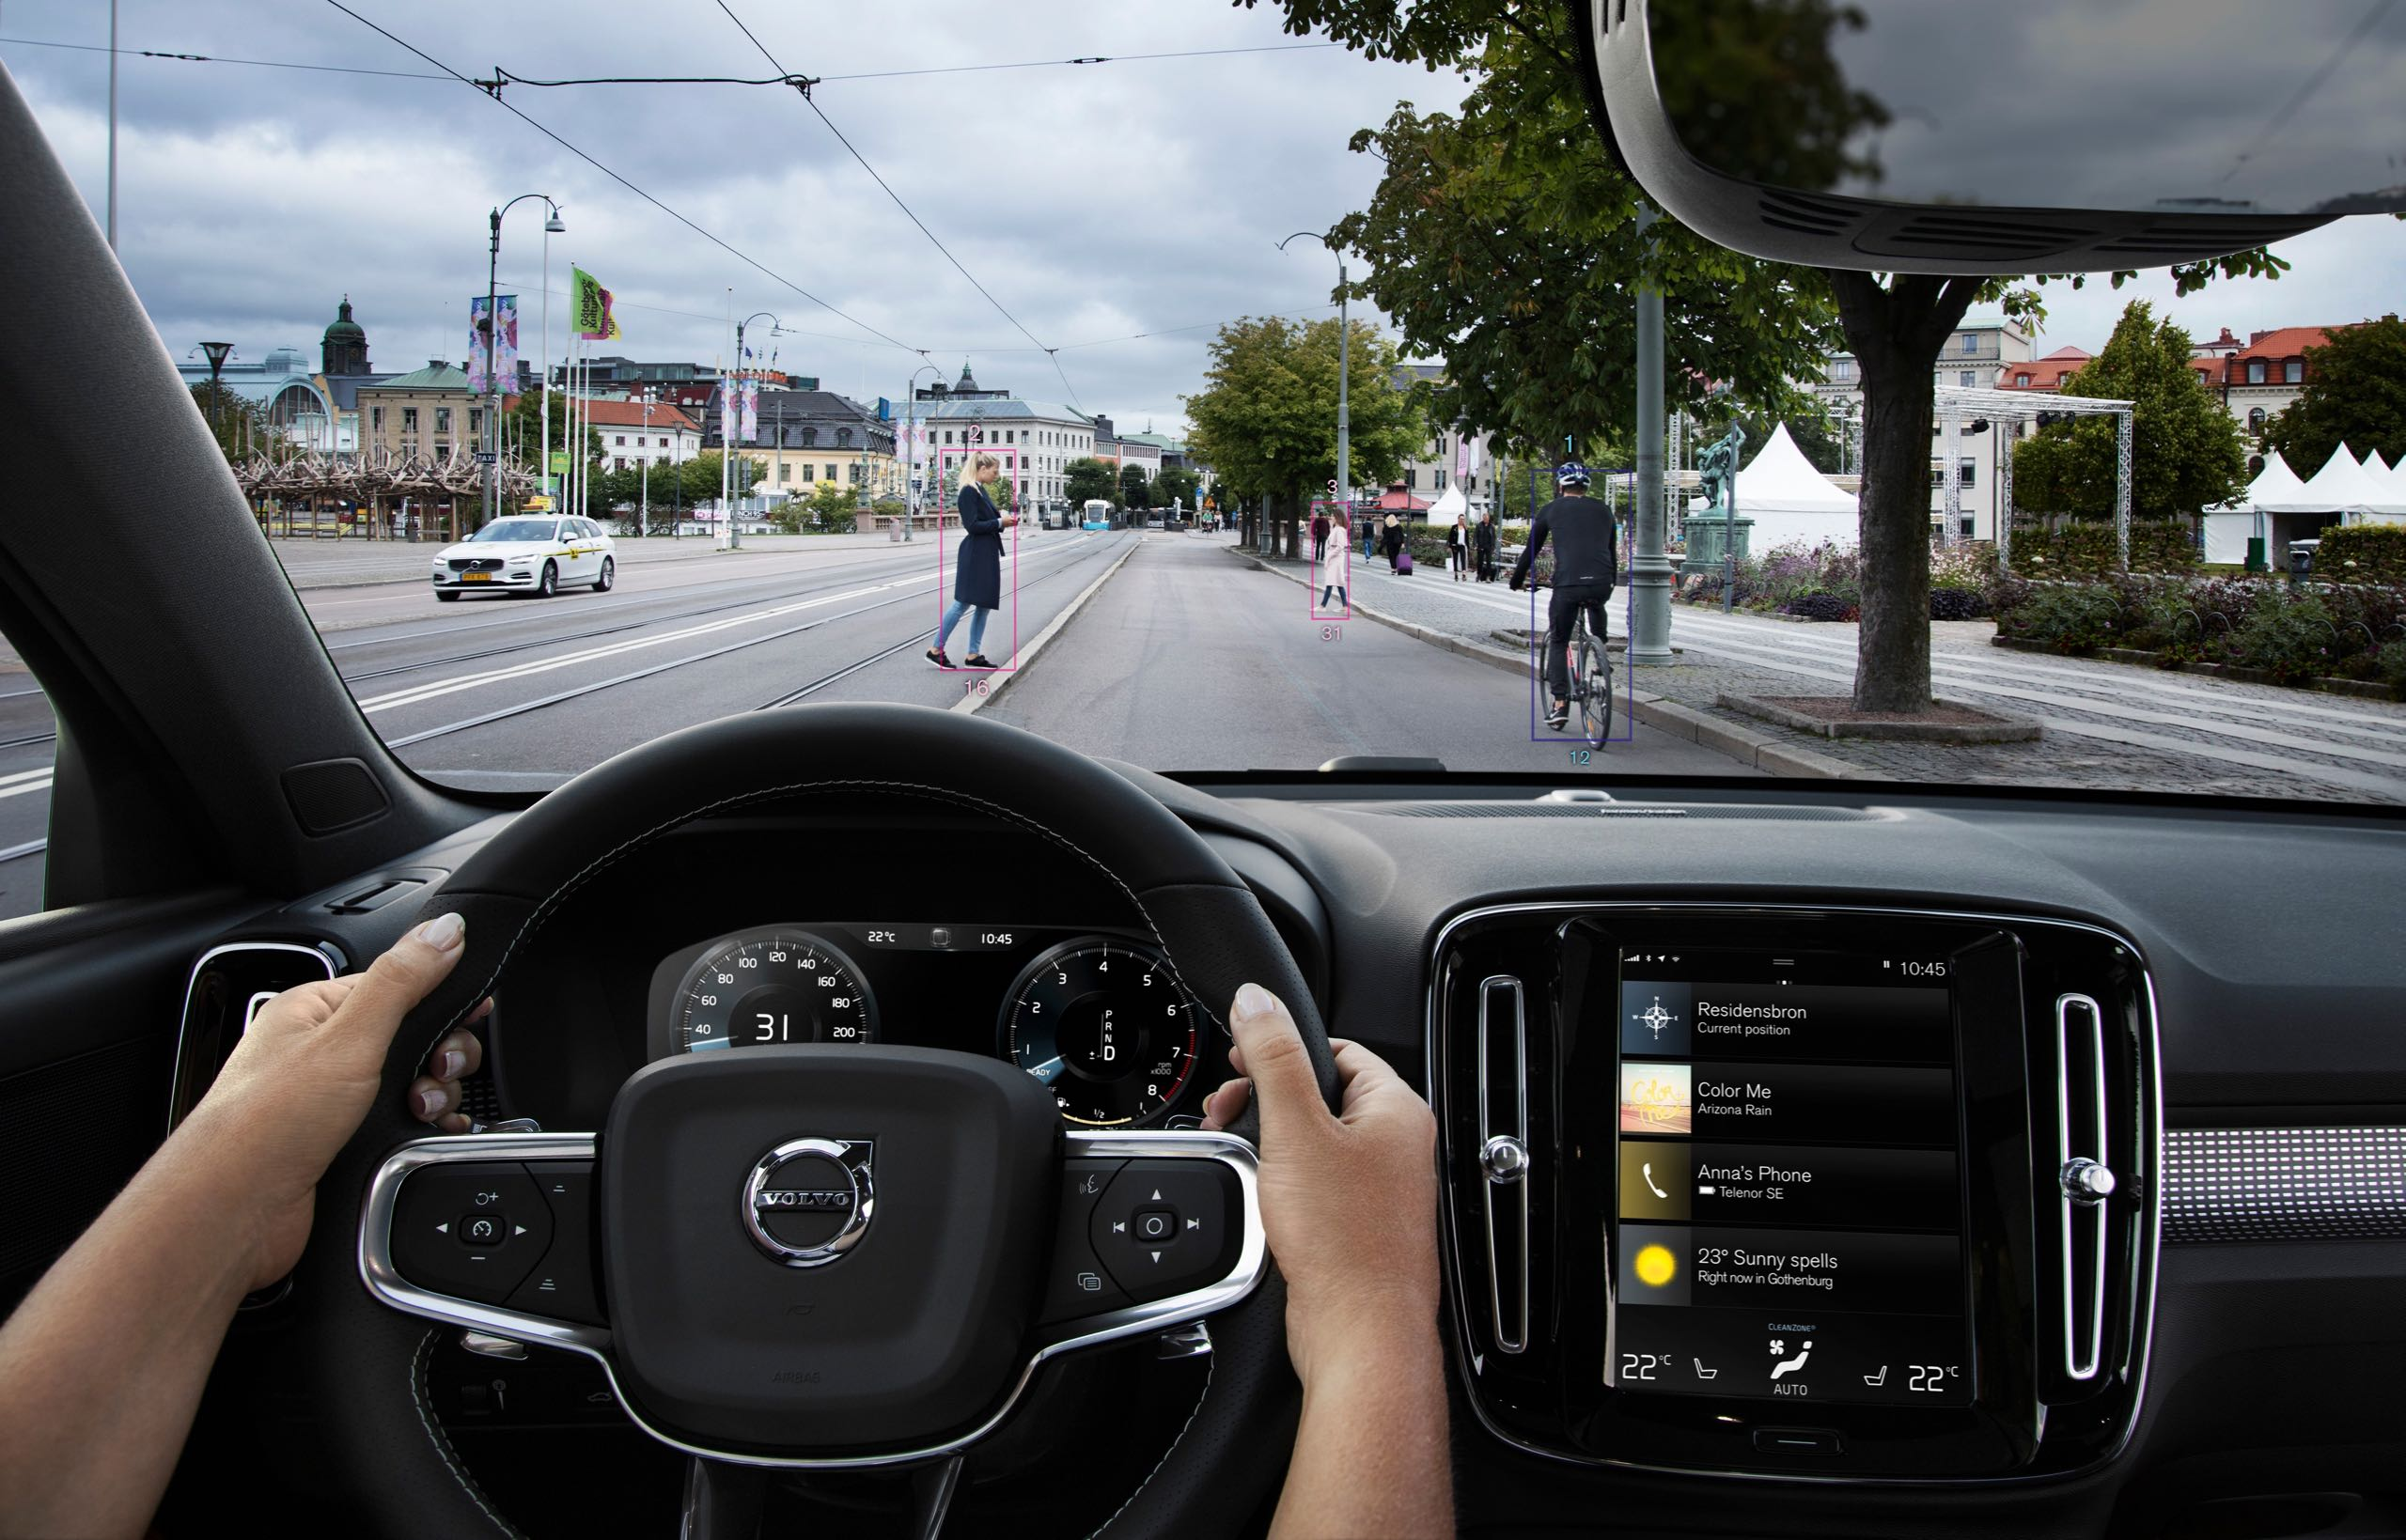 New Volvo XC40 City Safety -  2017, 2018, 2018 New XC40, Exterior, Images, New XC40, Other, Safety